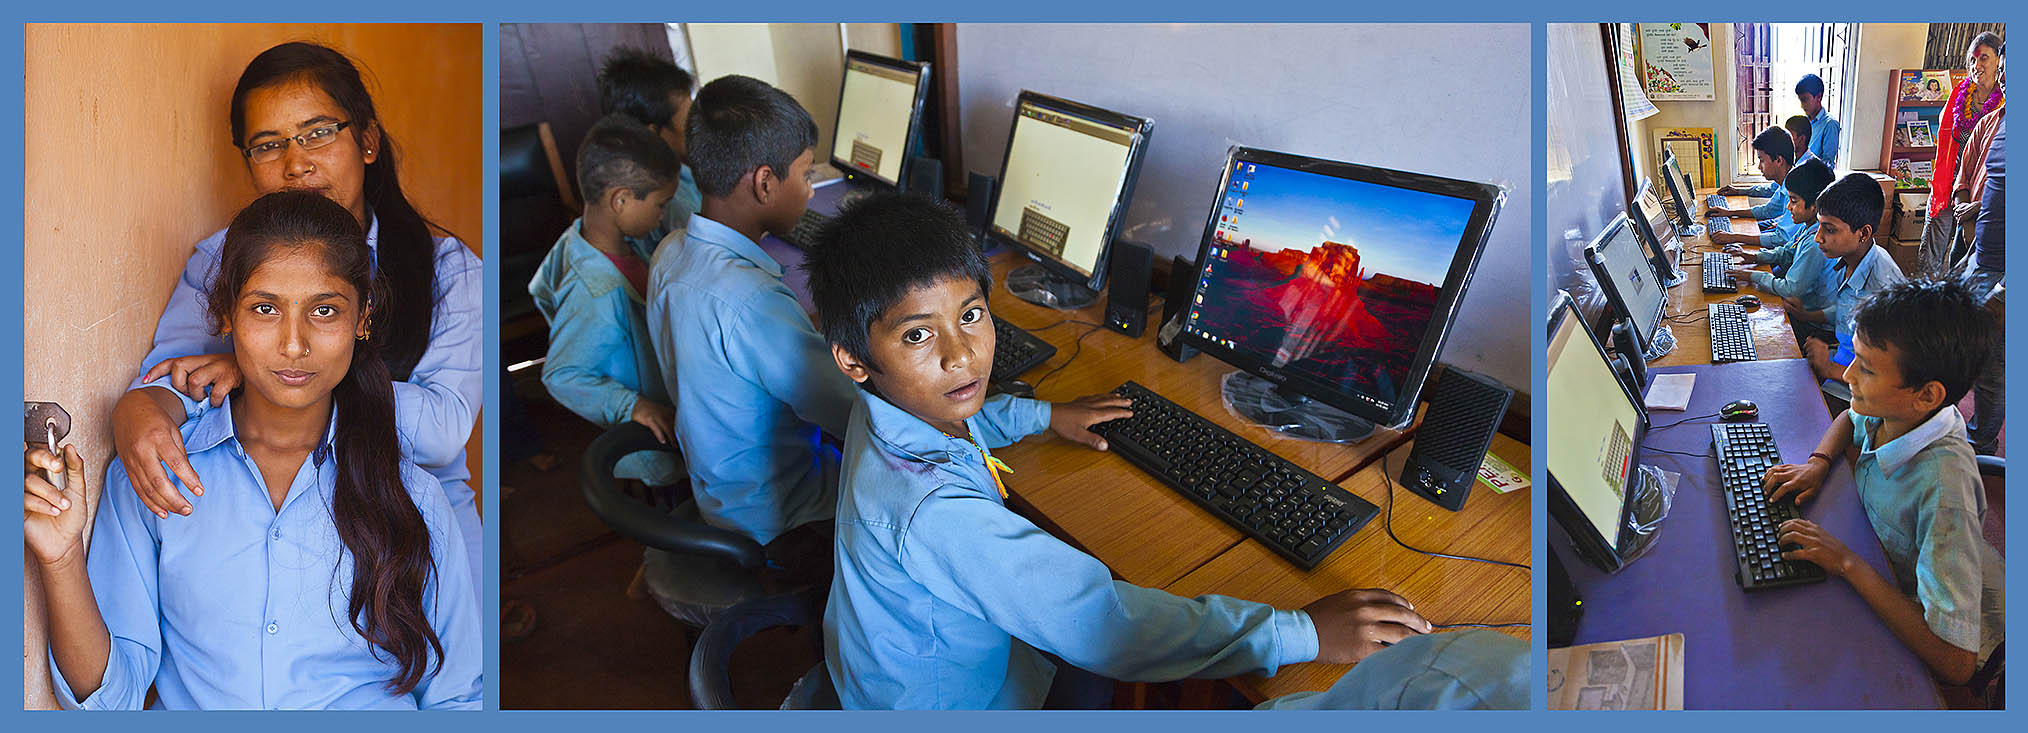 B_111D_GOGANPANI_SCHOOL_COMPUTERS_NEPAL_D163.jpg